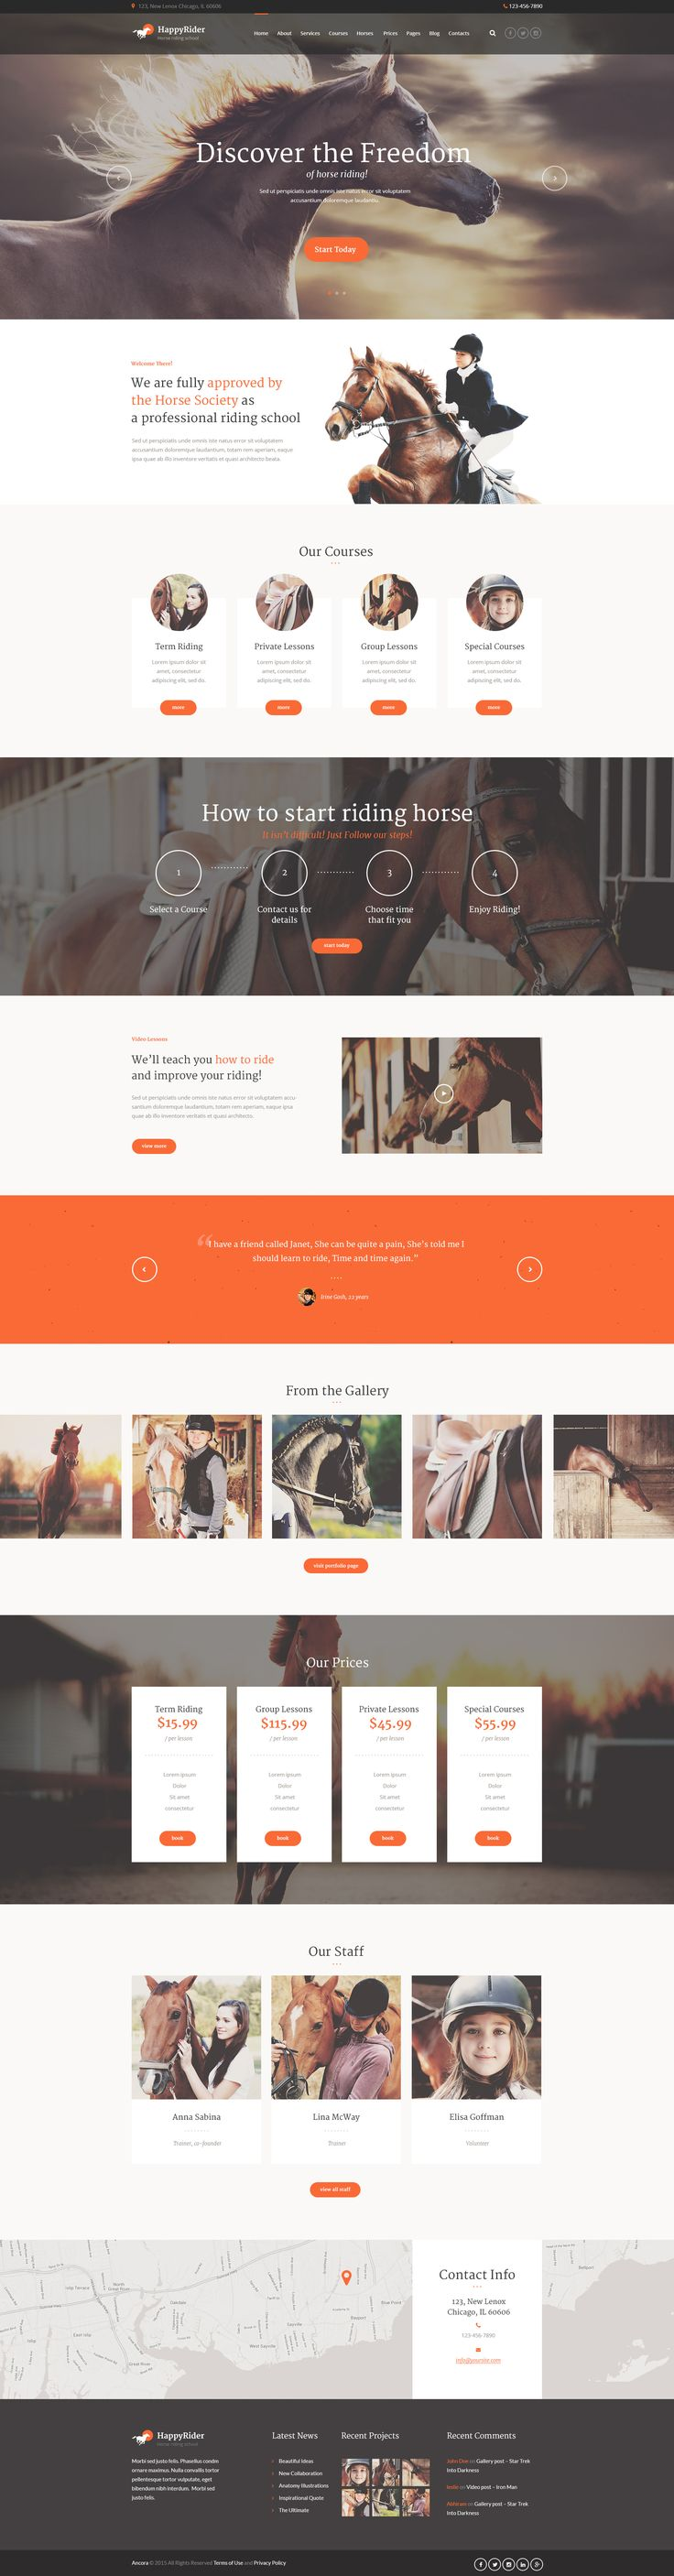 WordPress Theme with cool vintage design that is suitable for #horse-riding…